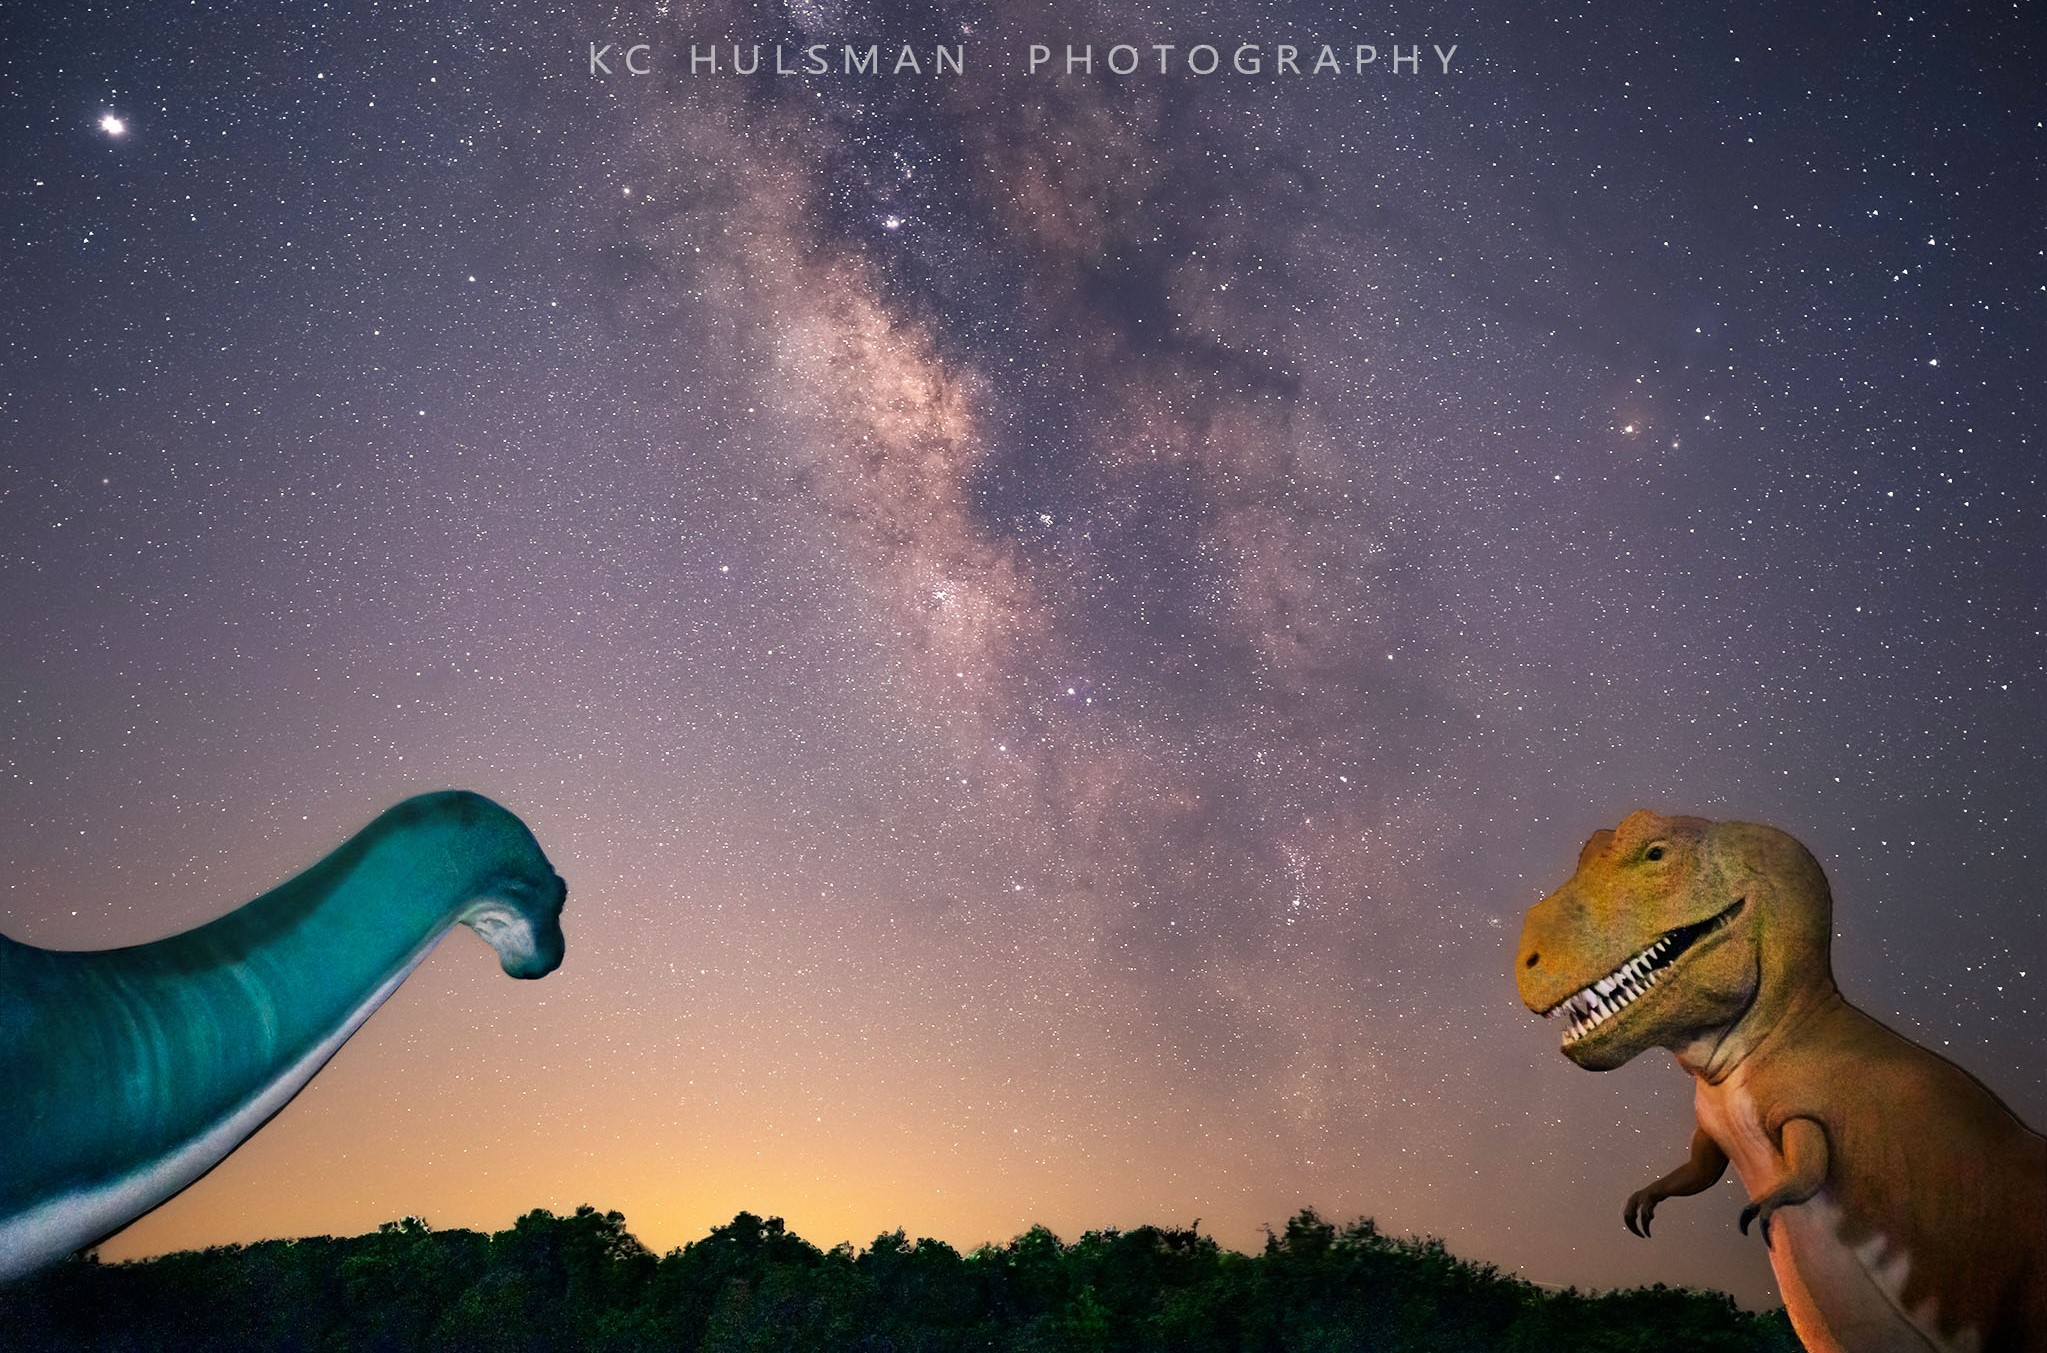 Photograph of the Milky way with Dinosaur Statues by KC Hulsman